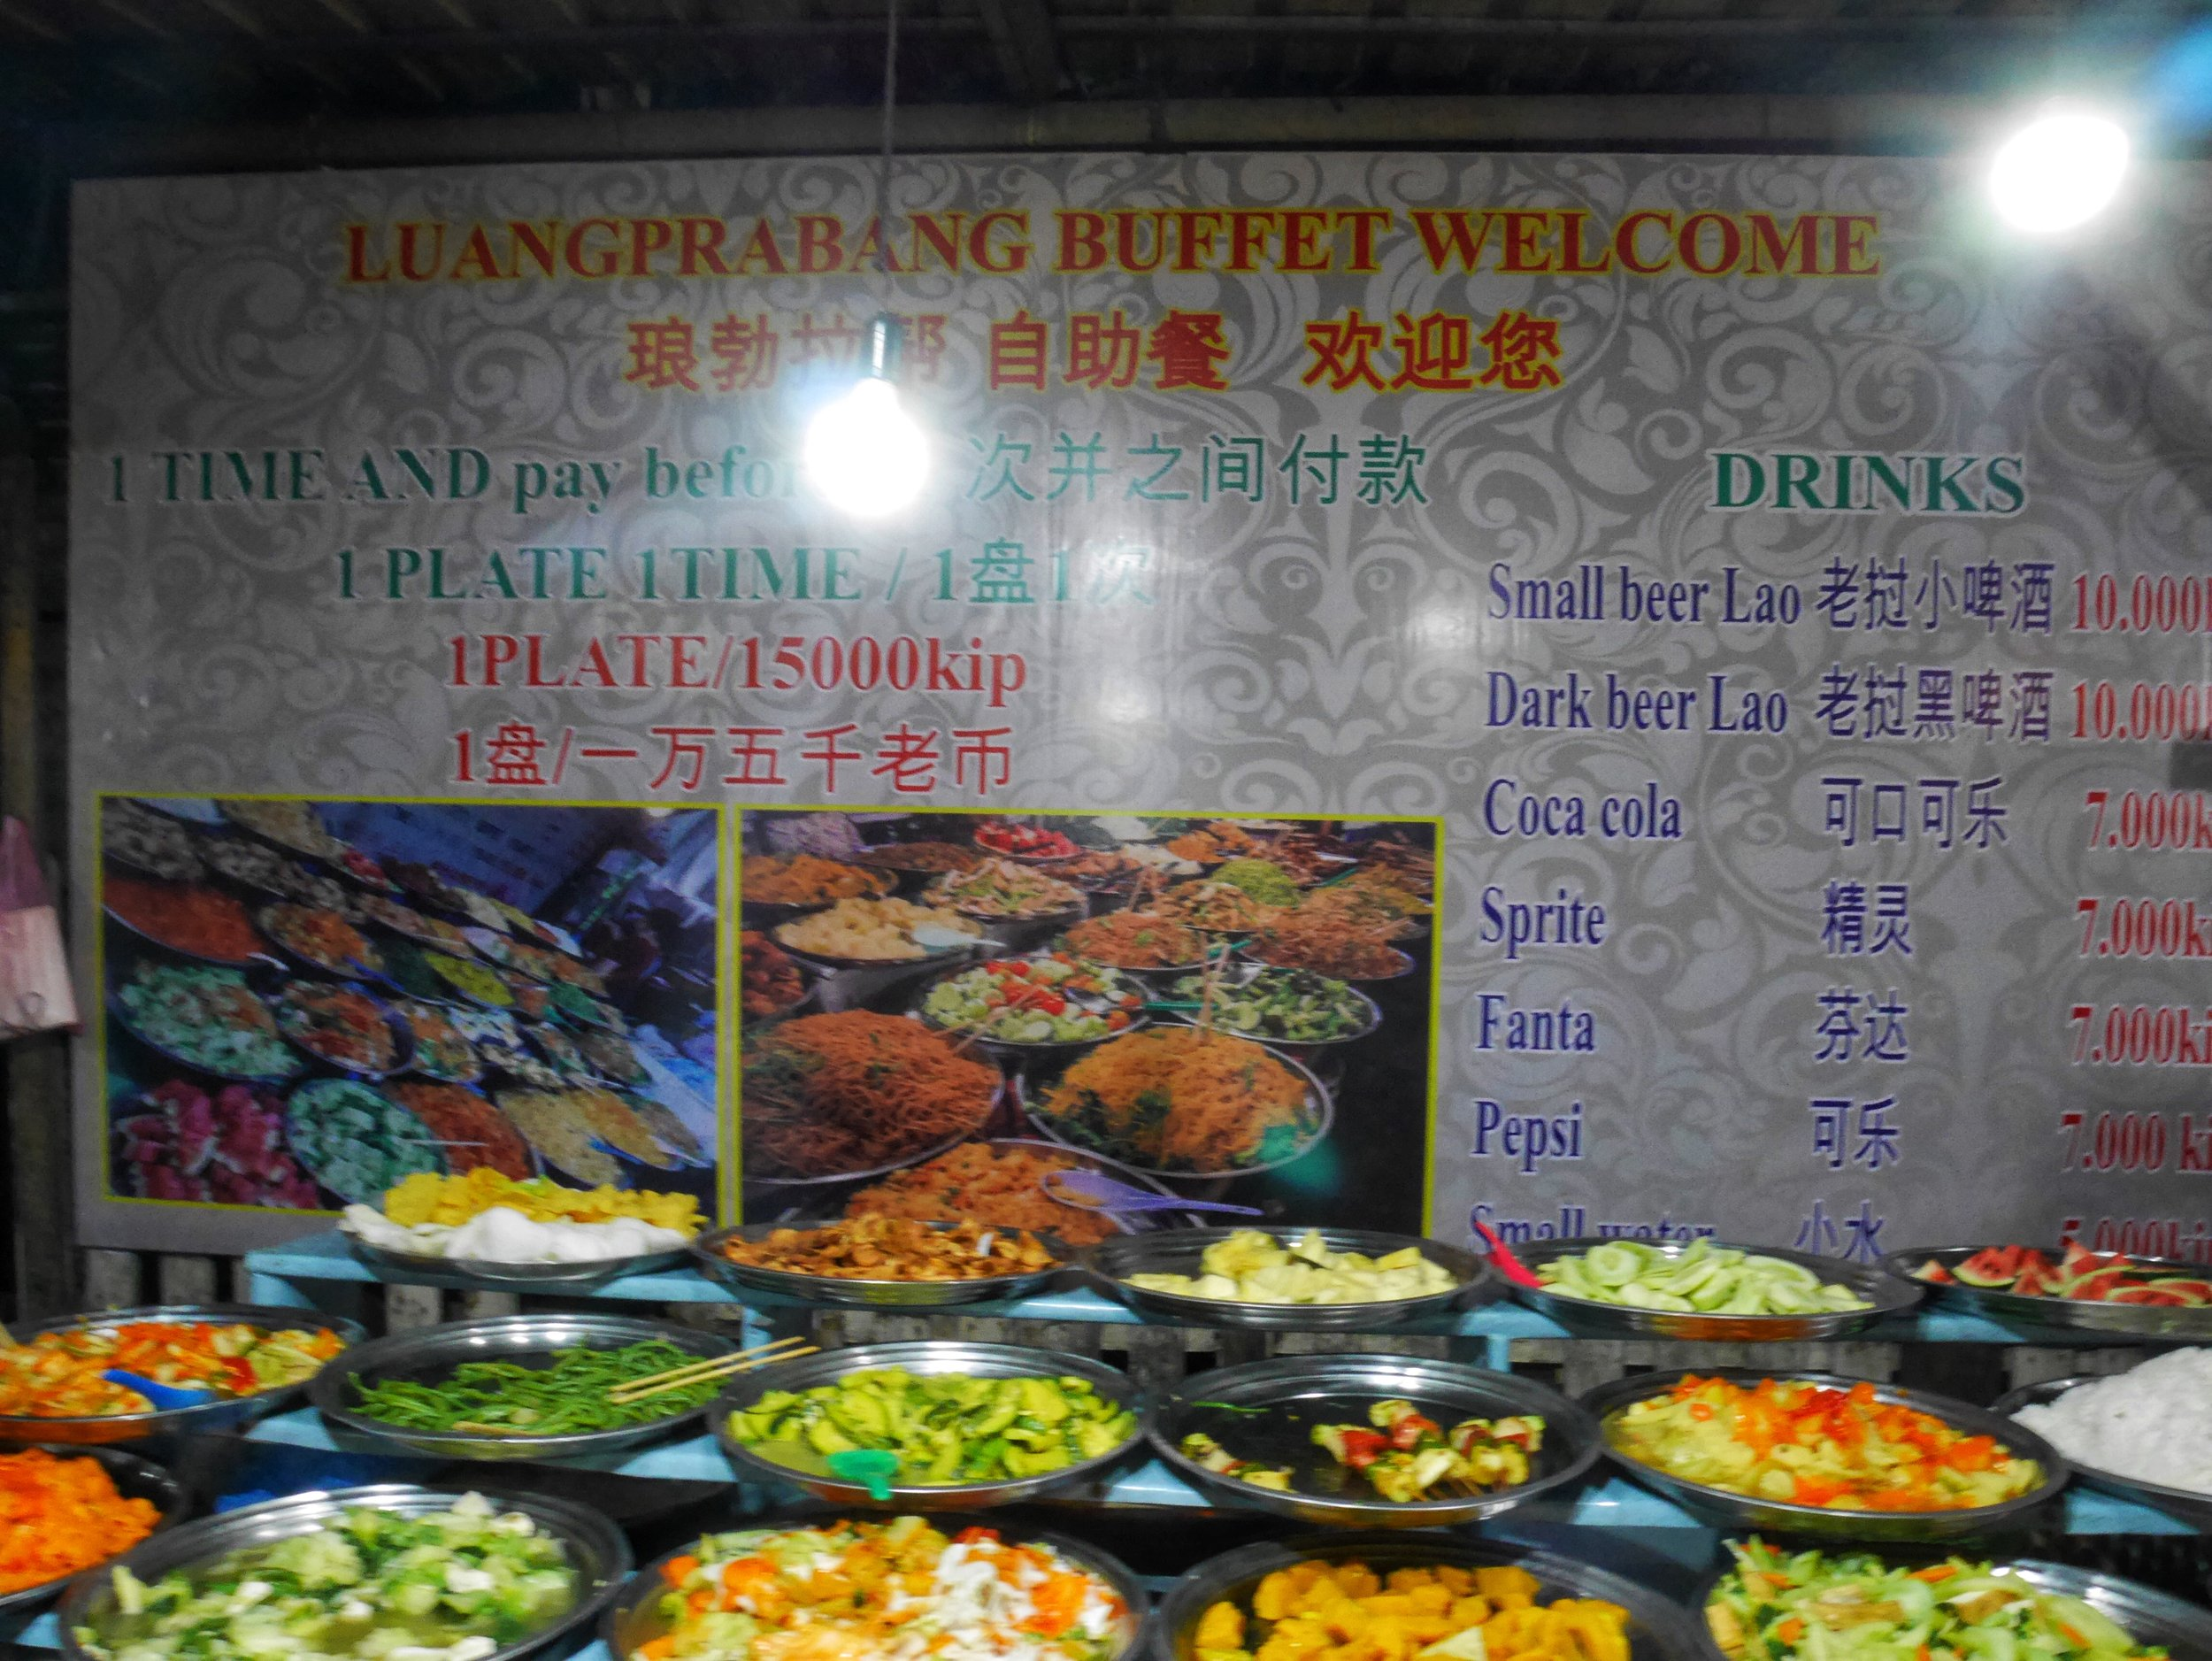 Night Market Vegetarian Buffet in Luang Prabang, Laos